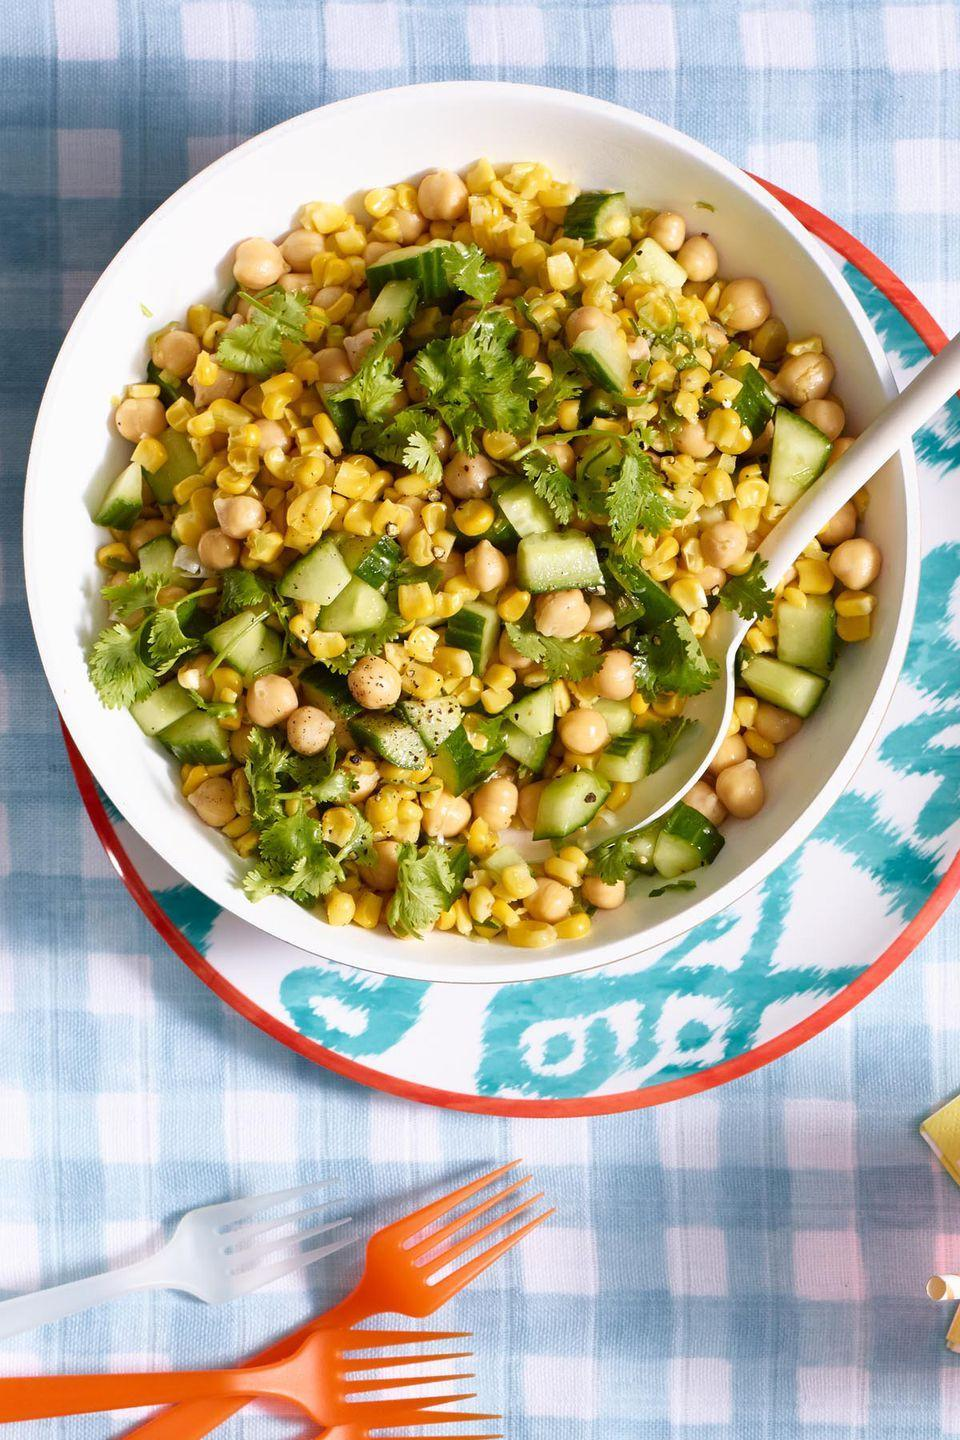 "<p>Move over, lettuce: Combine some of the best flavors of summer in this hearty bowl. </p><p><a href=""https://www.womansday.com/food-recipes/food-drinks/recipes/a55342/fresh-corn-and-chickpea-salad-recipe/"" rel=""nofollow noopener"" target=""_blank"" data-ylk=""slk:Get the recipe for Fresh Corn and Chickpea Salad."" class=""link rapid-noclick-resp""><em>Get the recipe for Fresh Corn and Chickpea Salad.</em></a> </p>"